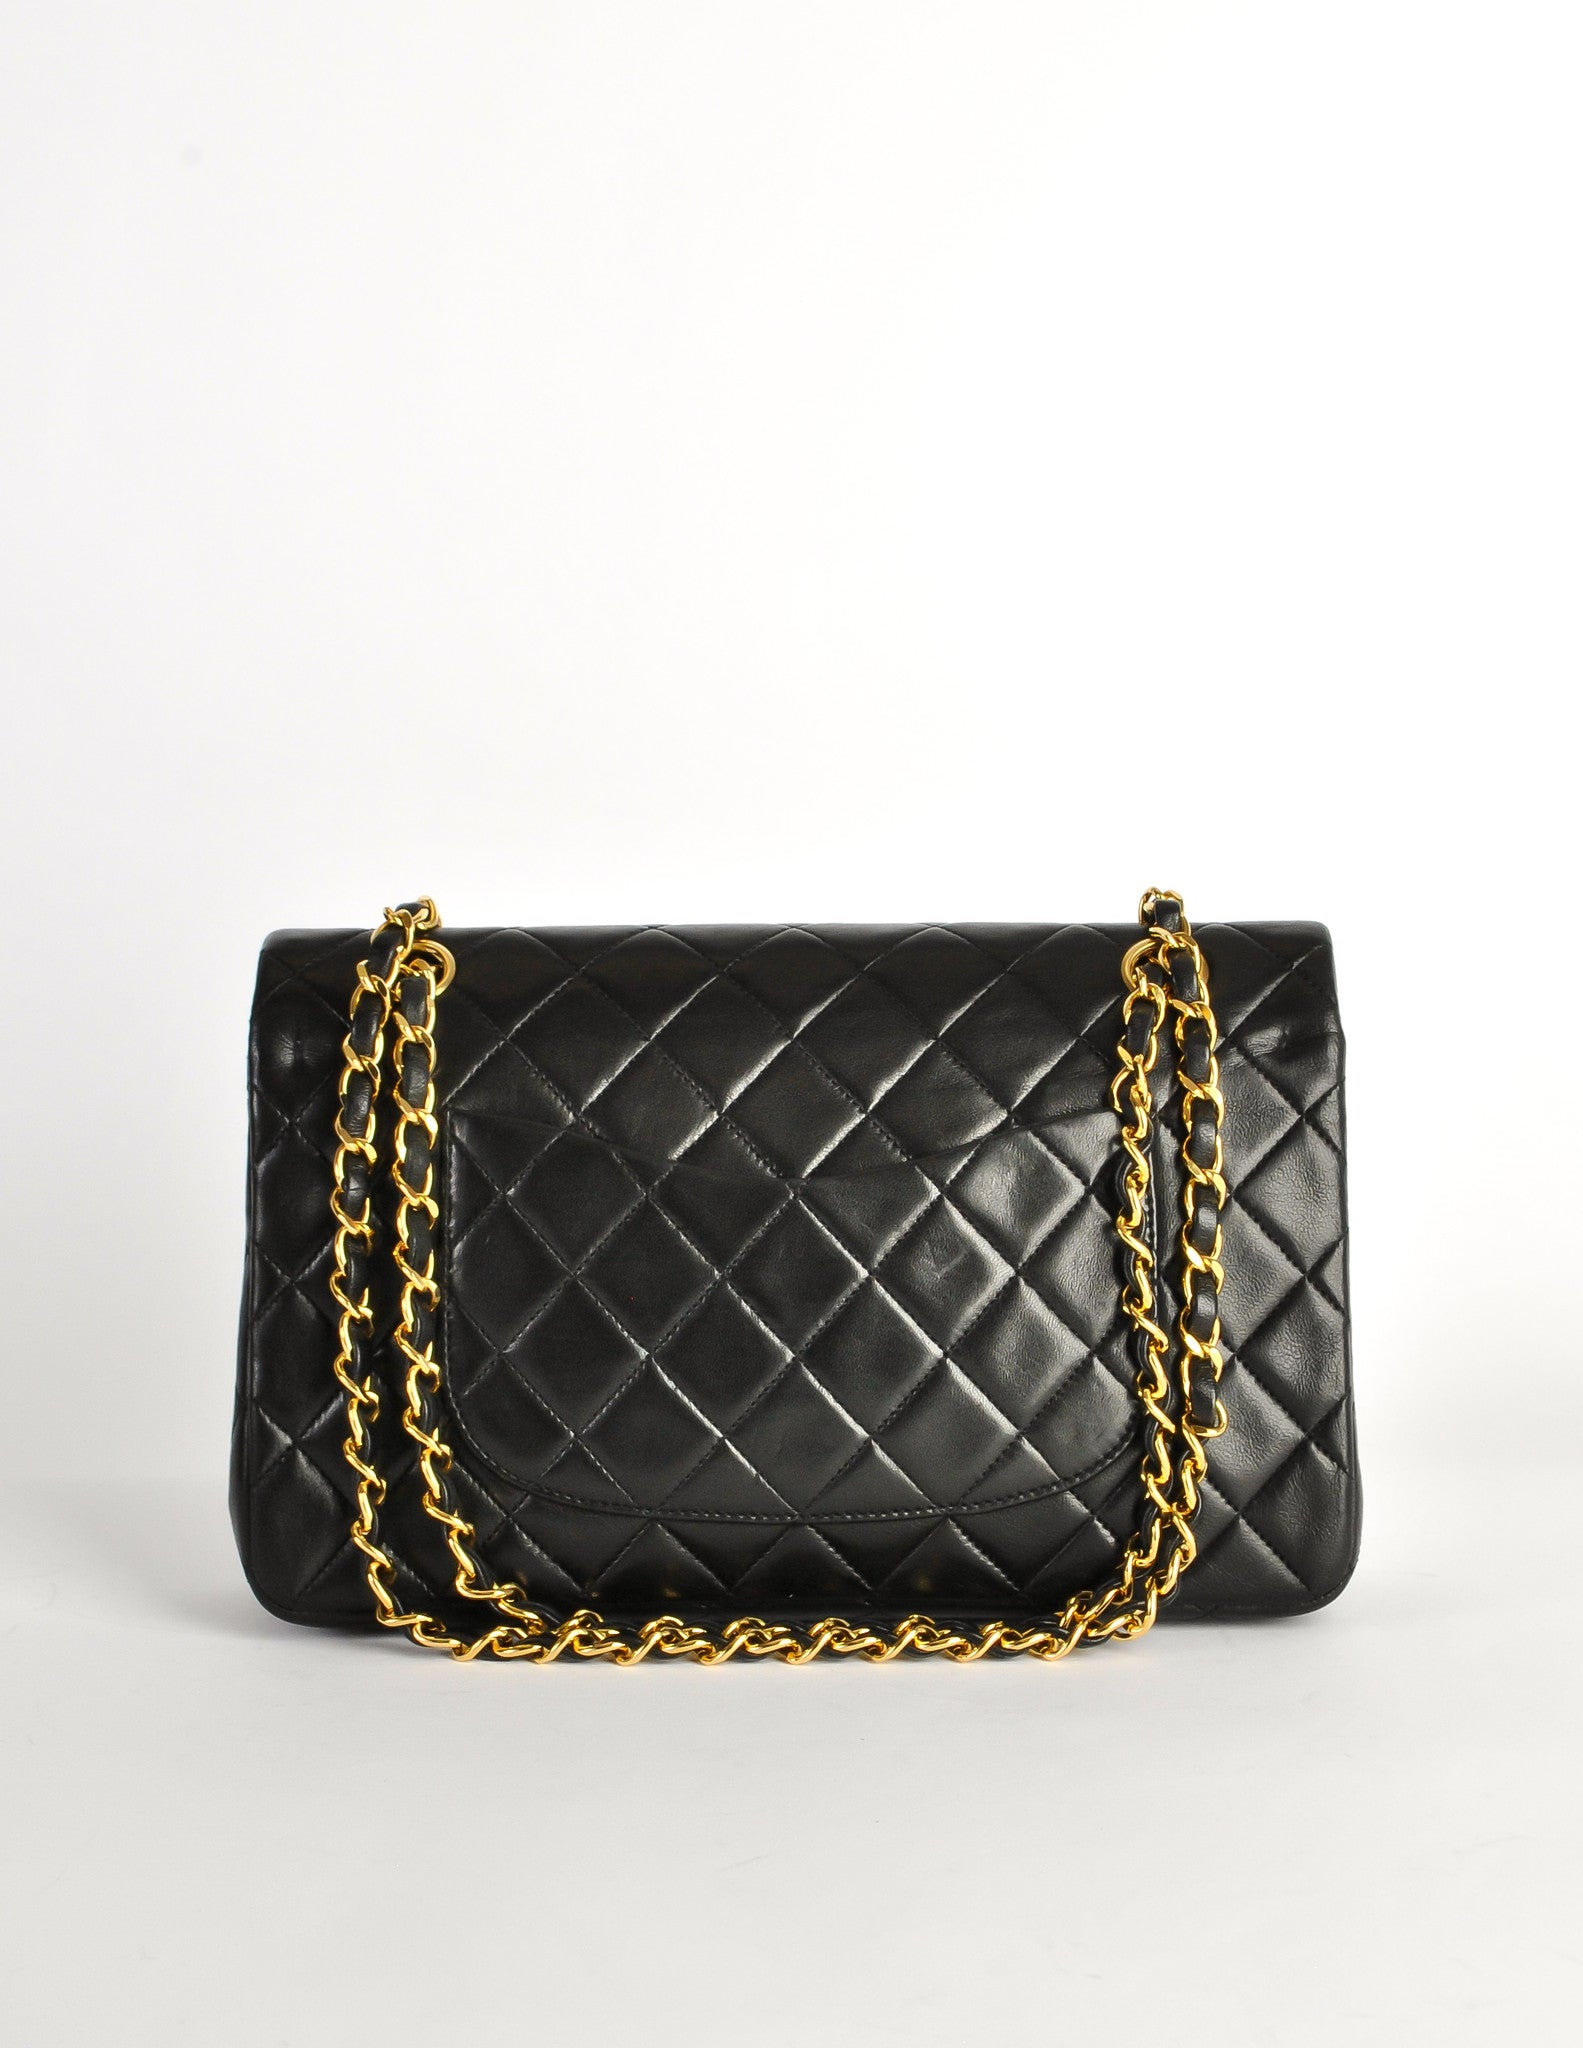 e38650a36ab8 Chanel Vintage Black Quilted Lambskin Leather Classic Double Flap Bag -  Amarcord Vintage Fashion - 4